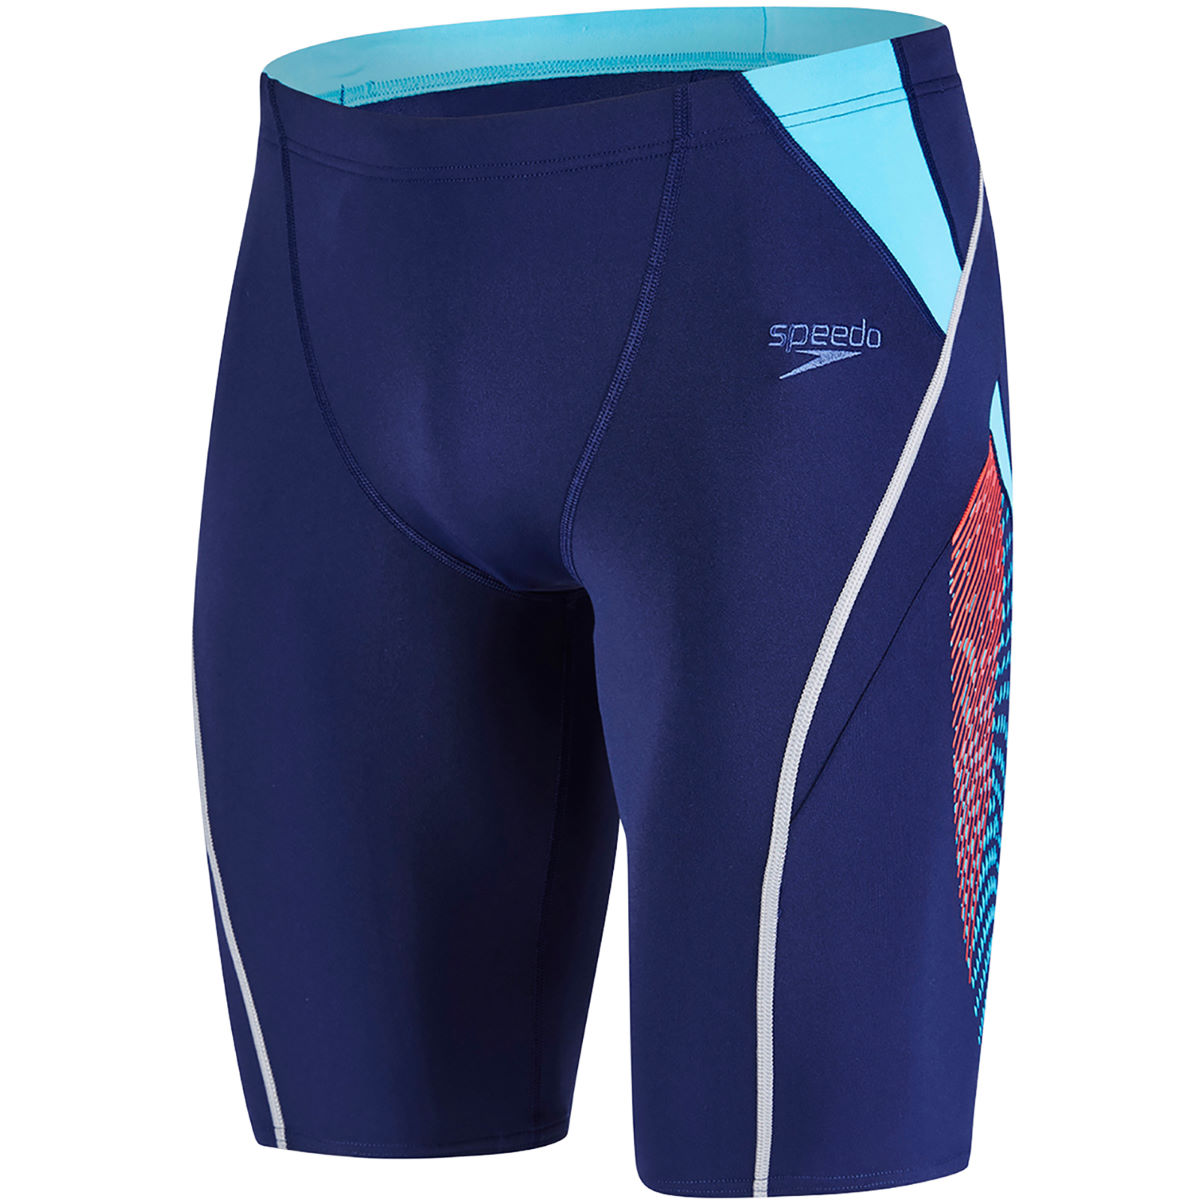 Jammer Speedo Fit Splice - 28 Navy/Lava Red Maillots de bain Adulte